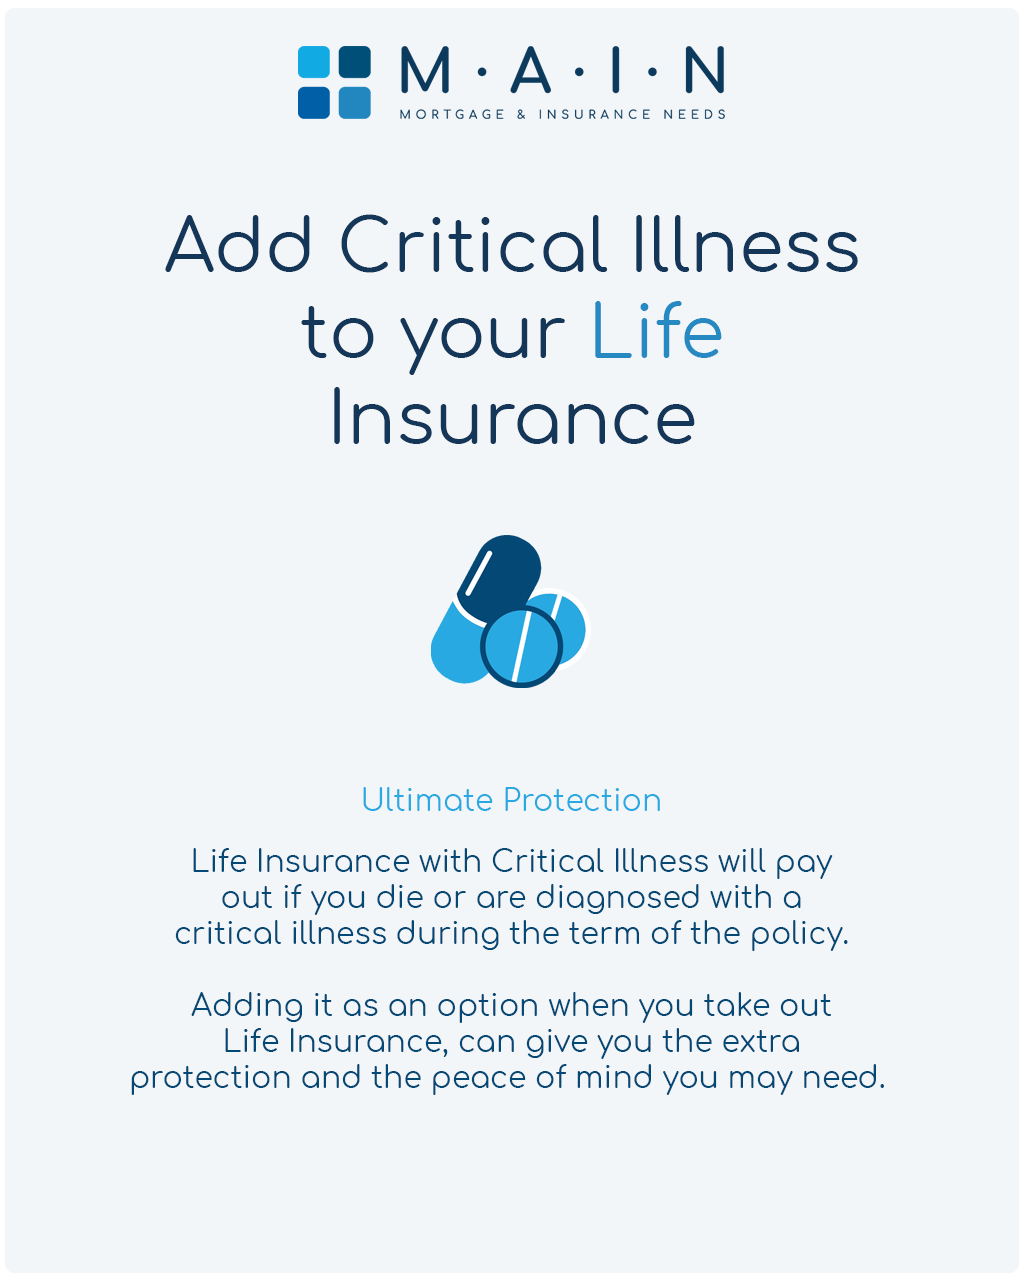 Add critical illness cover to your life insurance